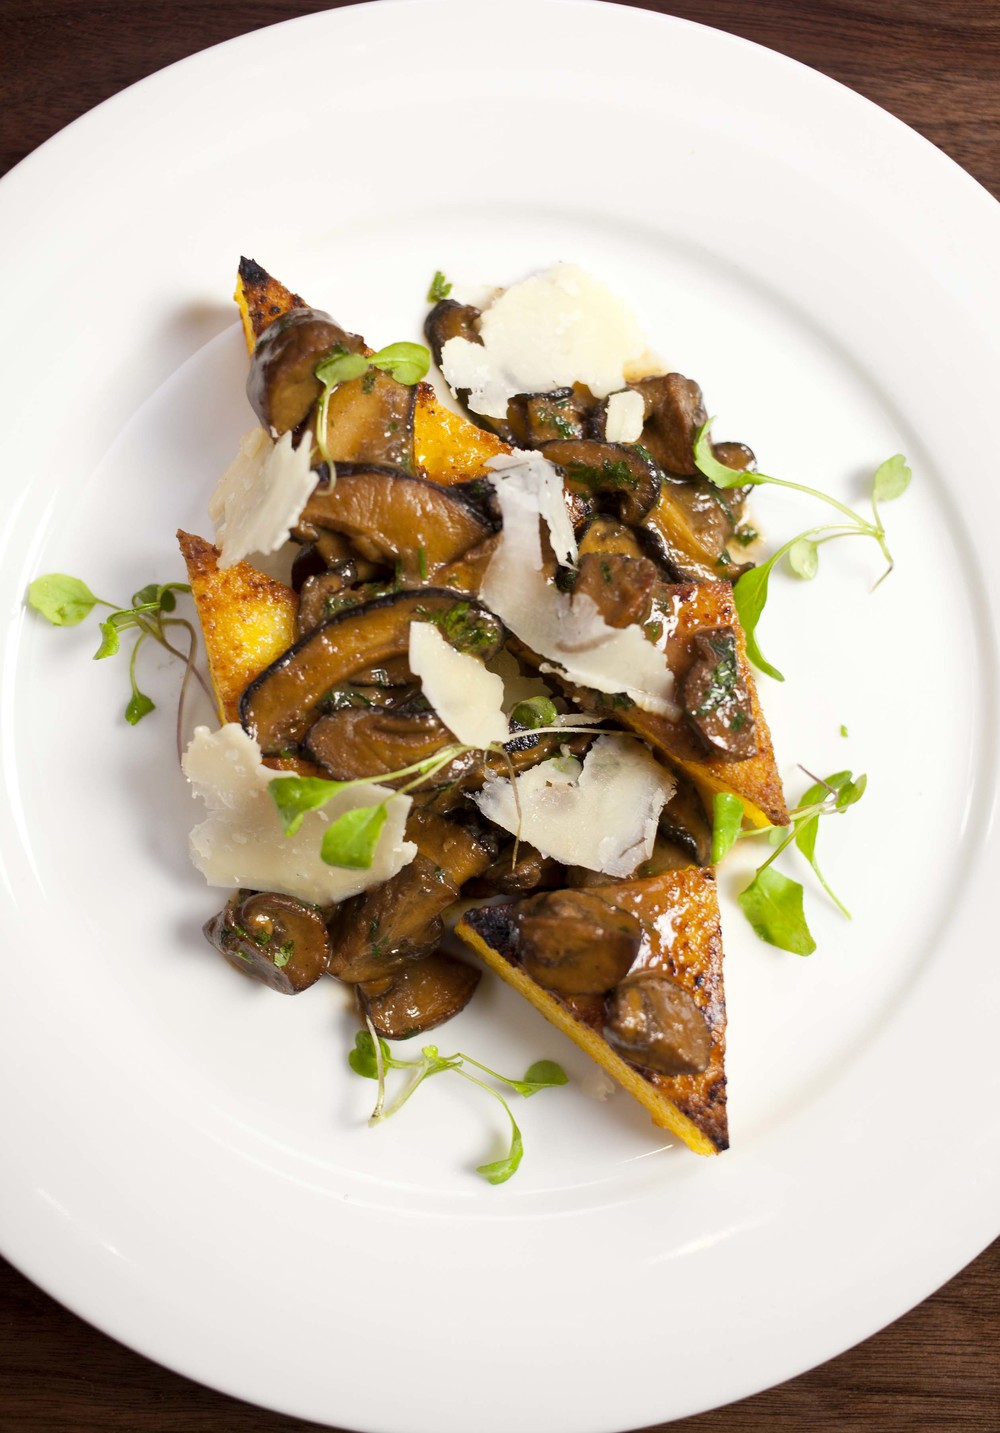 The polenta dish, my absolute favorite! Dreaming of consuming it as I type.